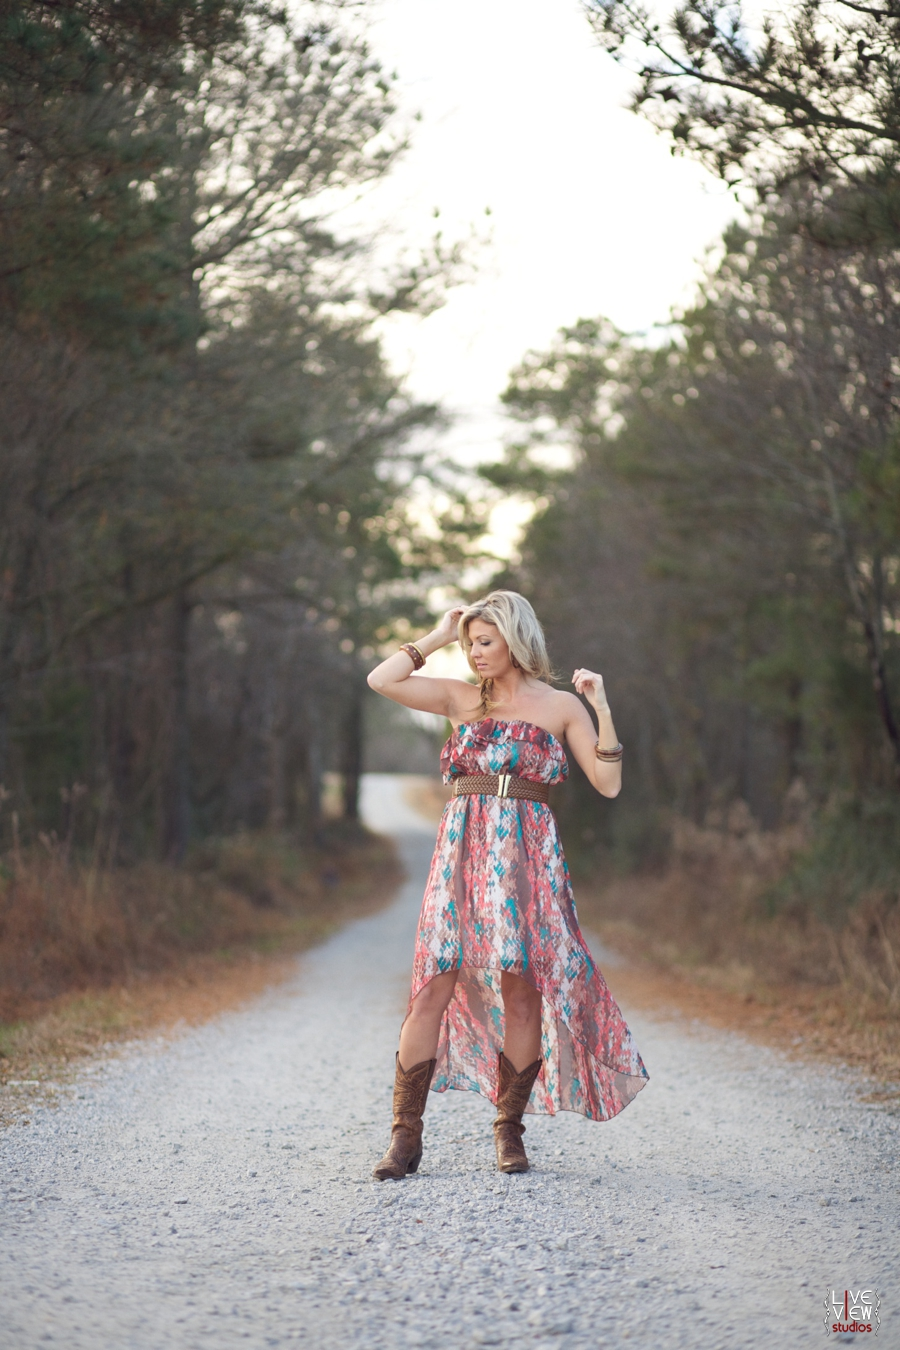 country album art photography, raleigh nc musician's portrait photography